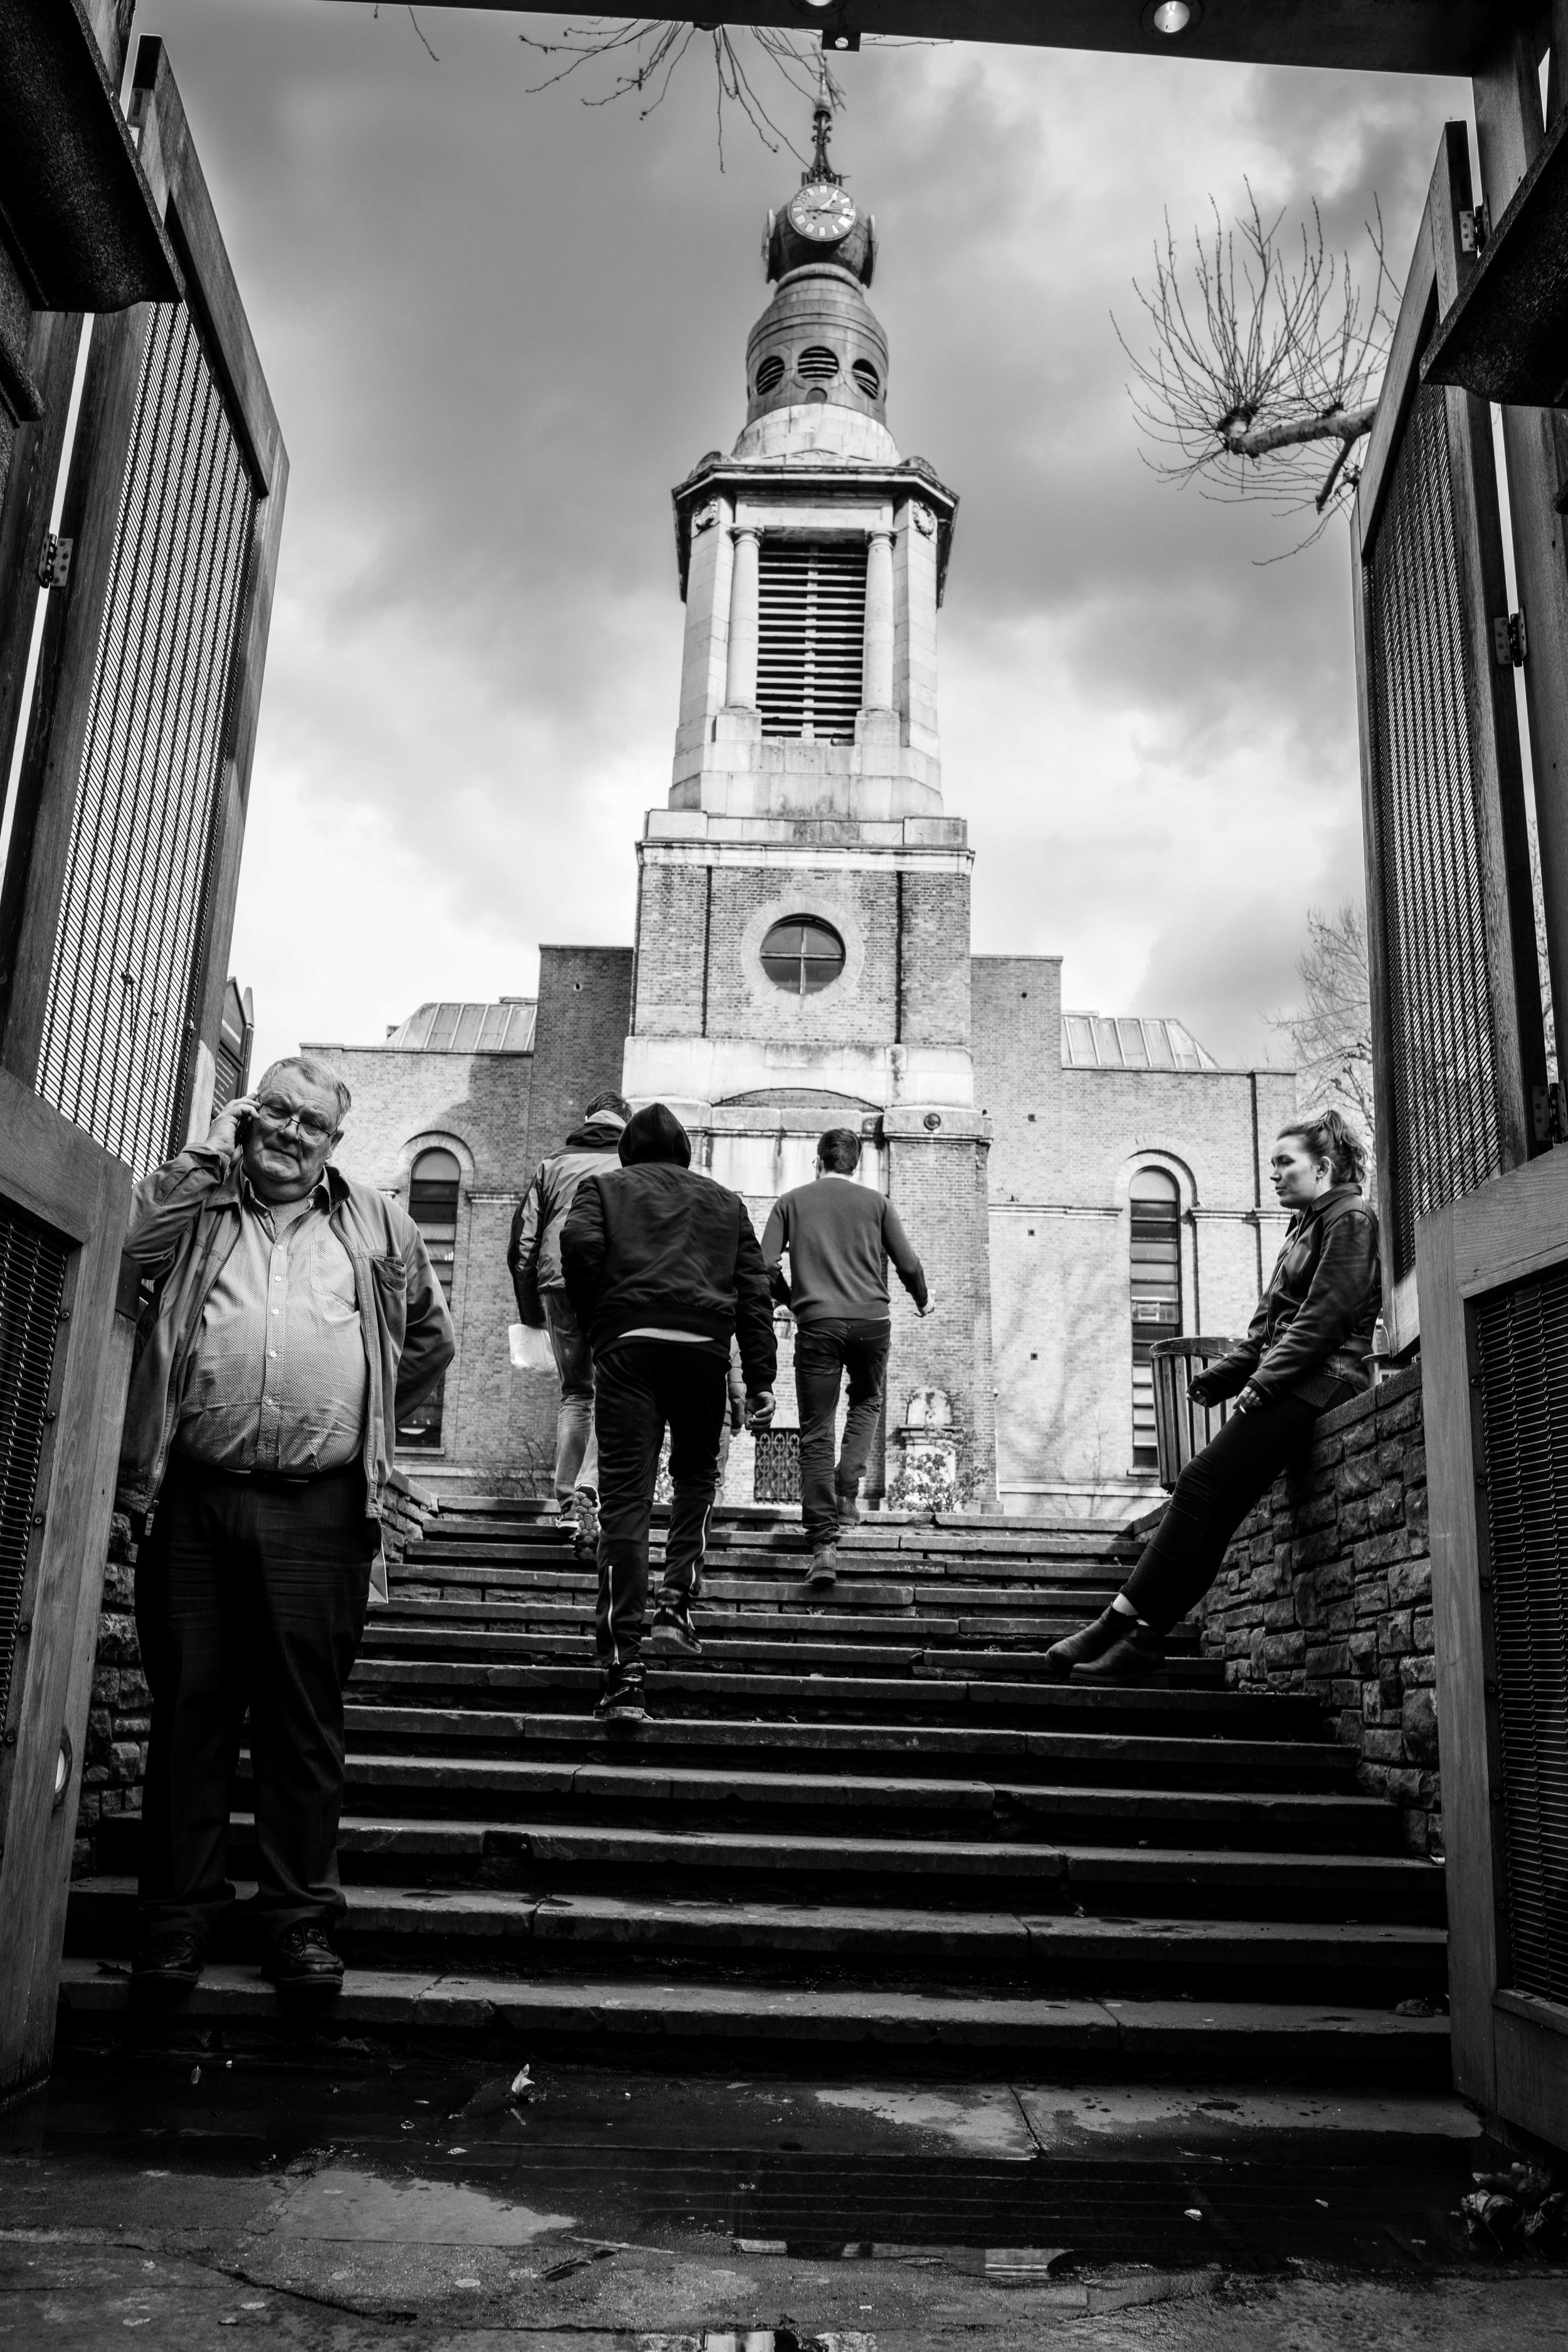 Black and white street photo of people living their lives on the stairs of an abandoned church in Soho, London.